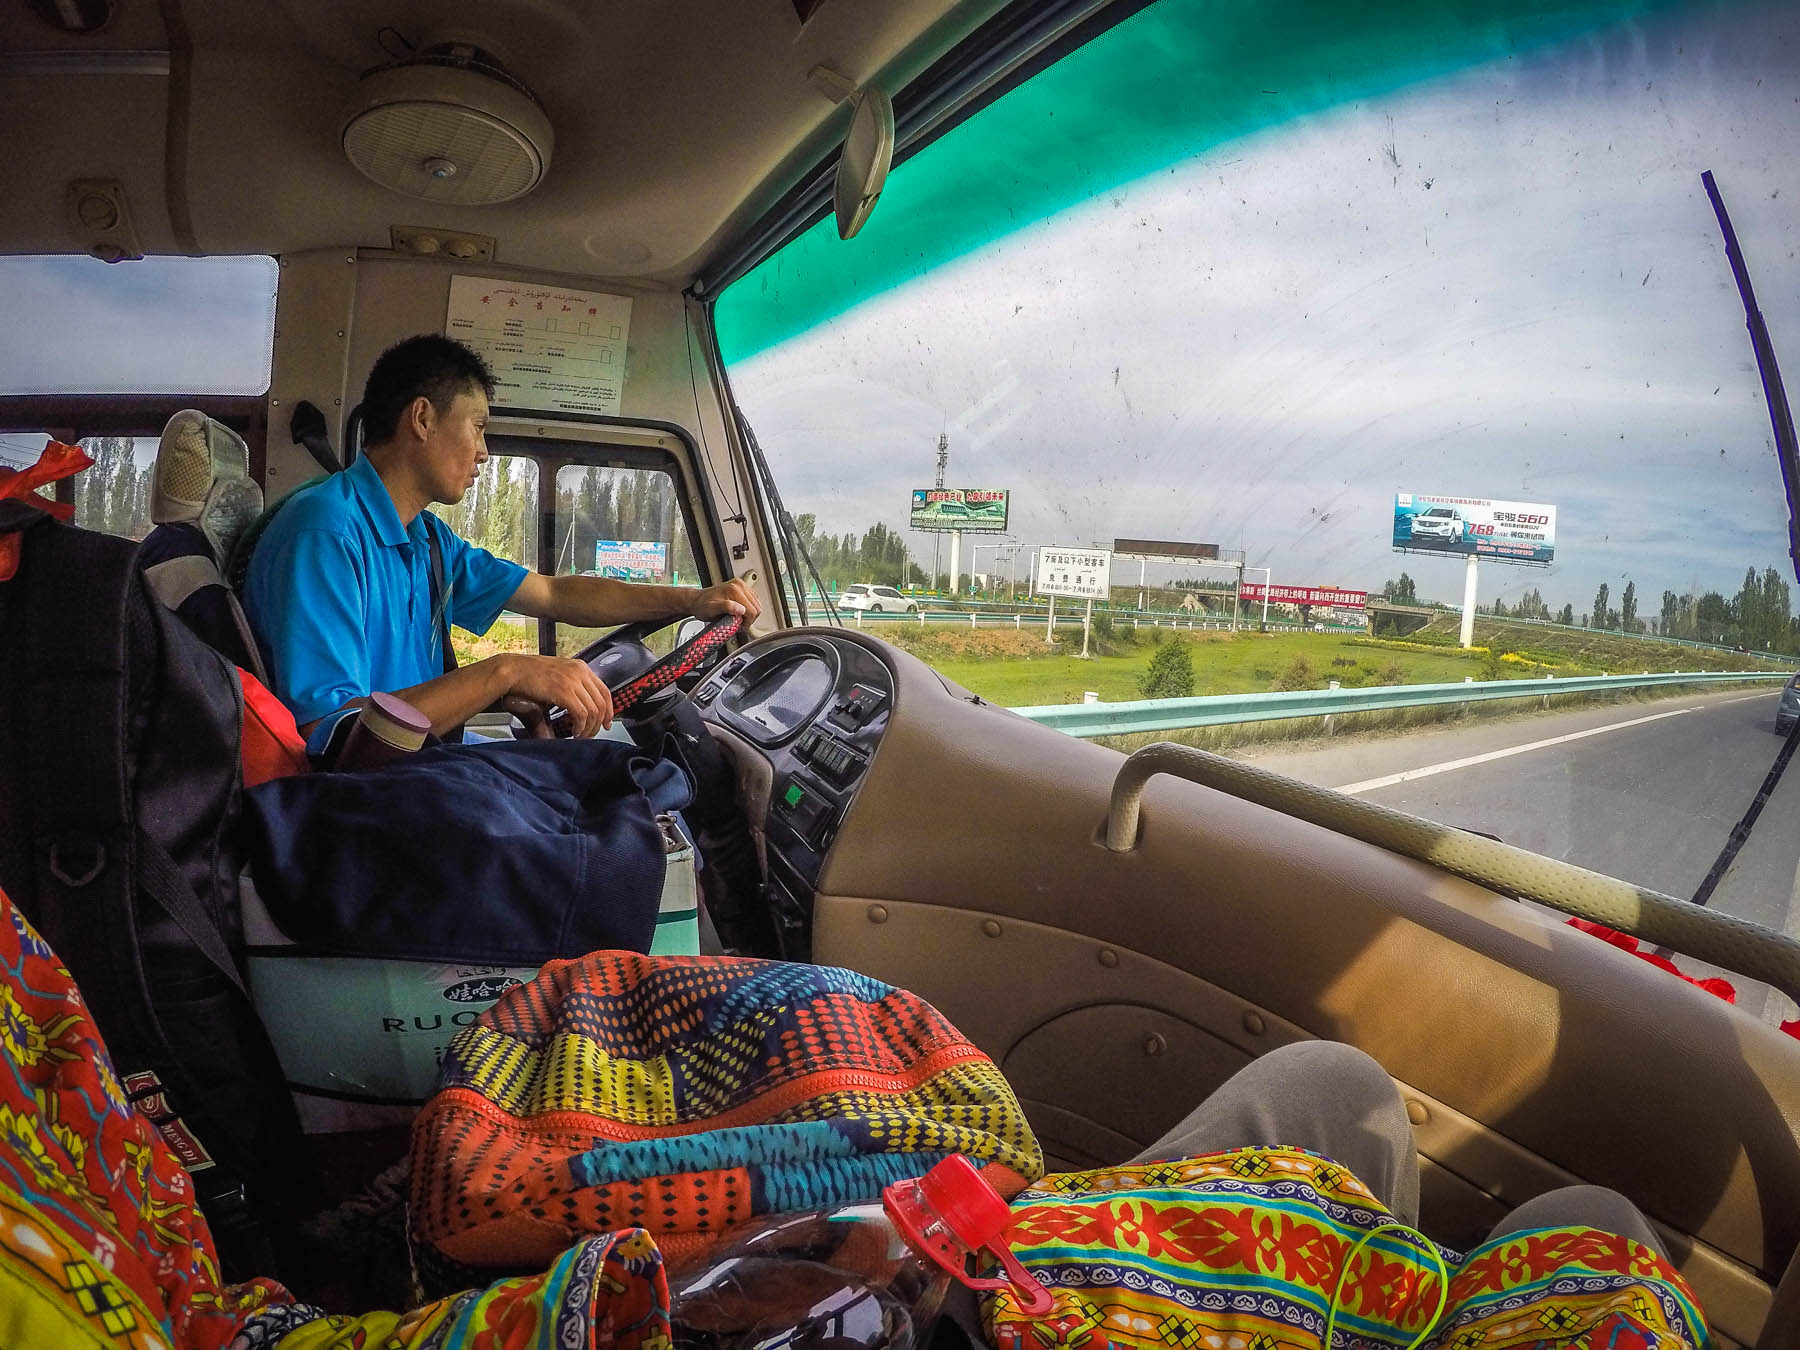 Riding the bus from Yining, China to the China - Kazakhstan border crossing at Khorgos